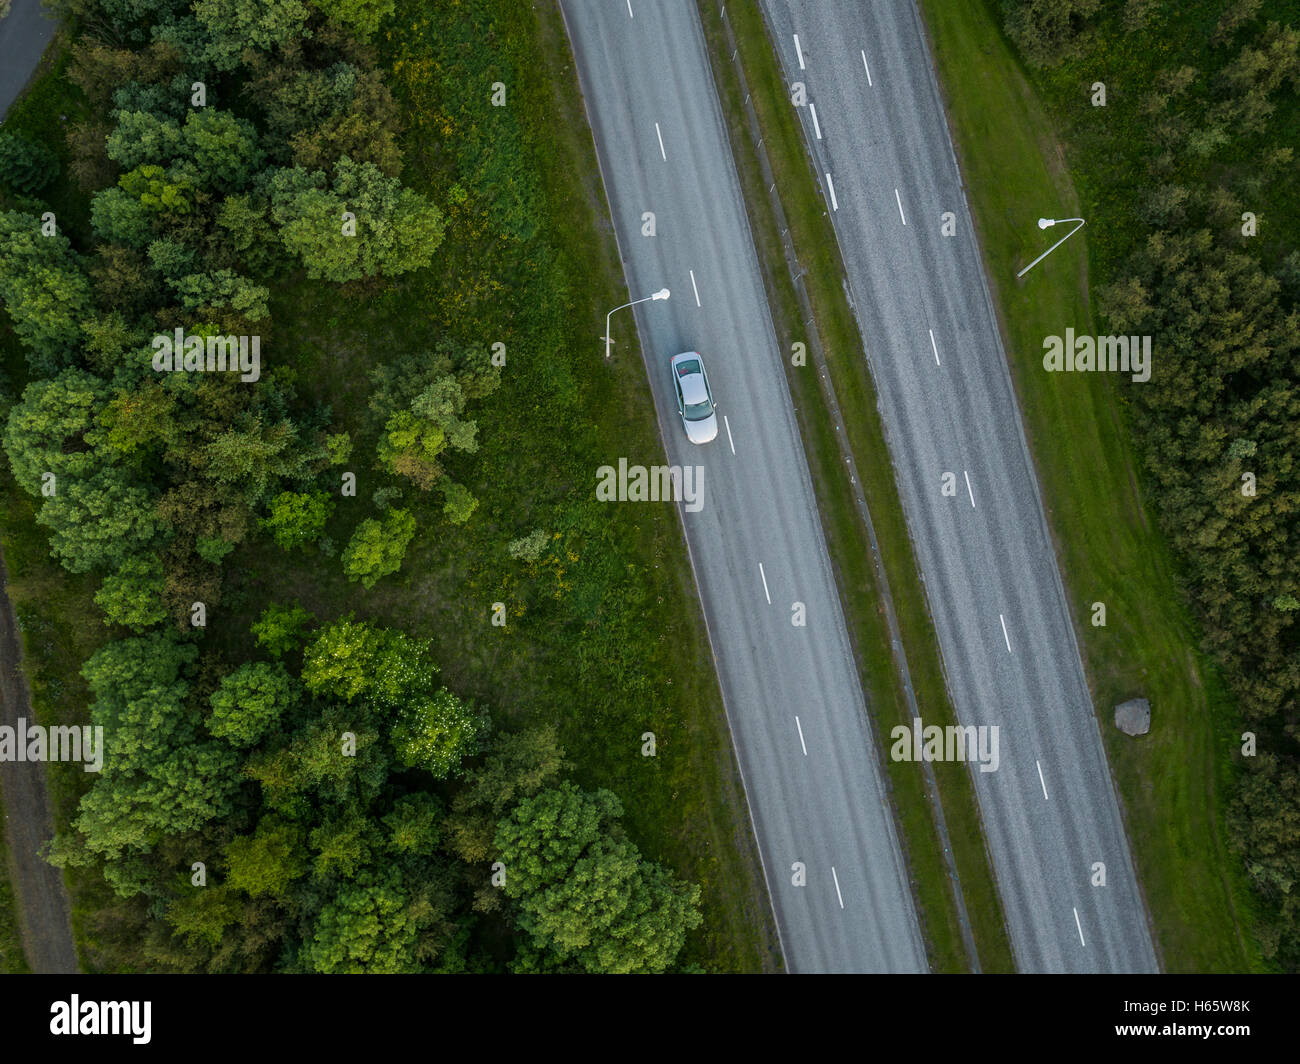 Top view of single car driving alone on the road, Reykjavik, Iceland.  This image is shot using a drone. - Stock Image